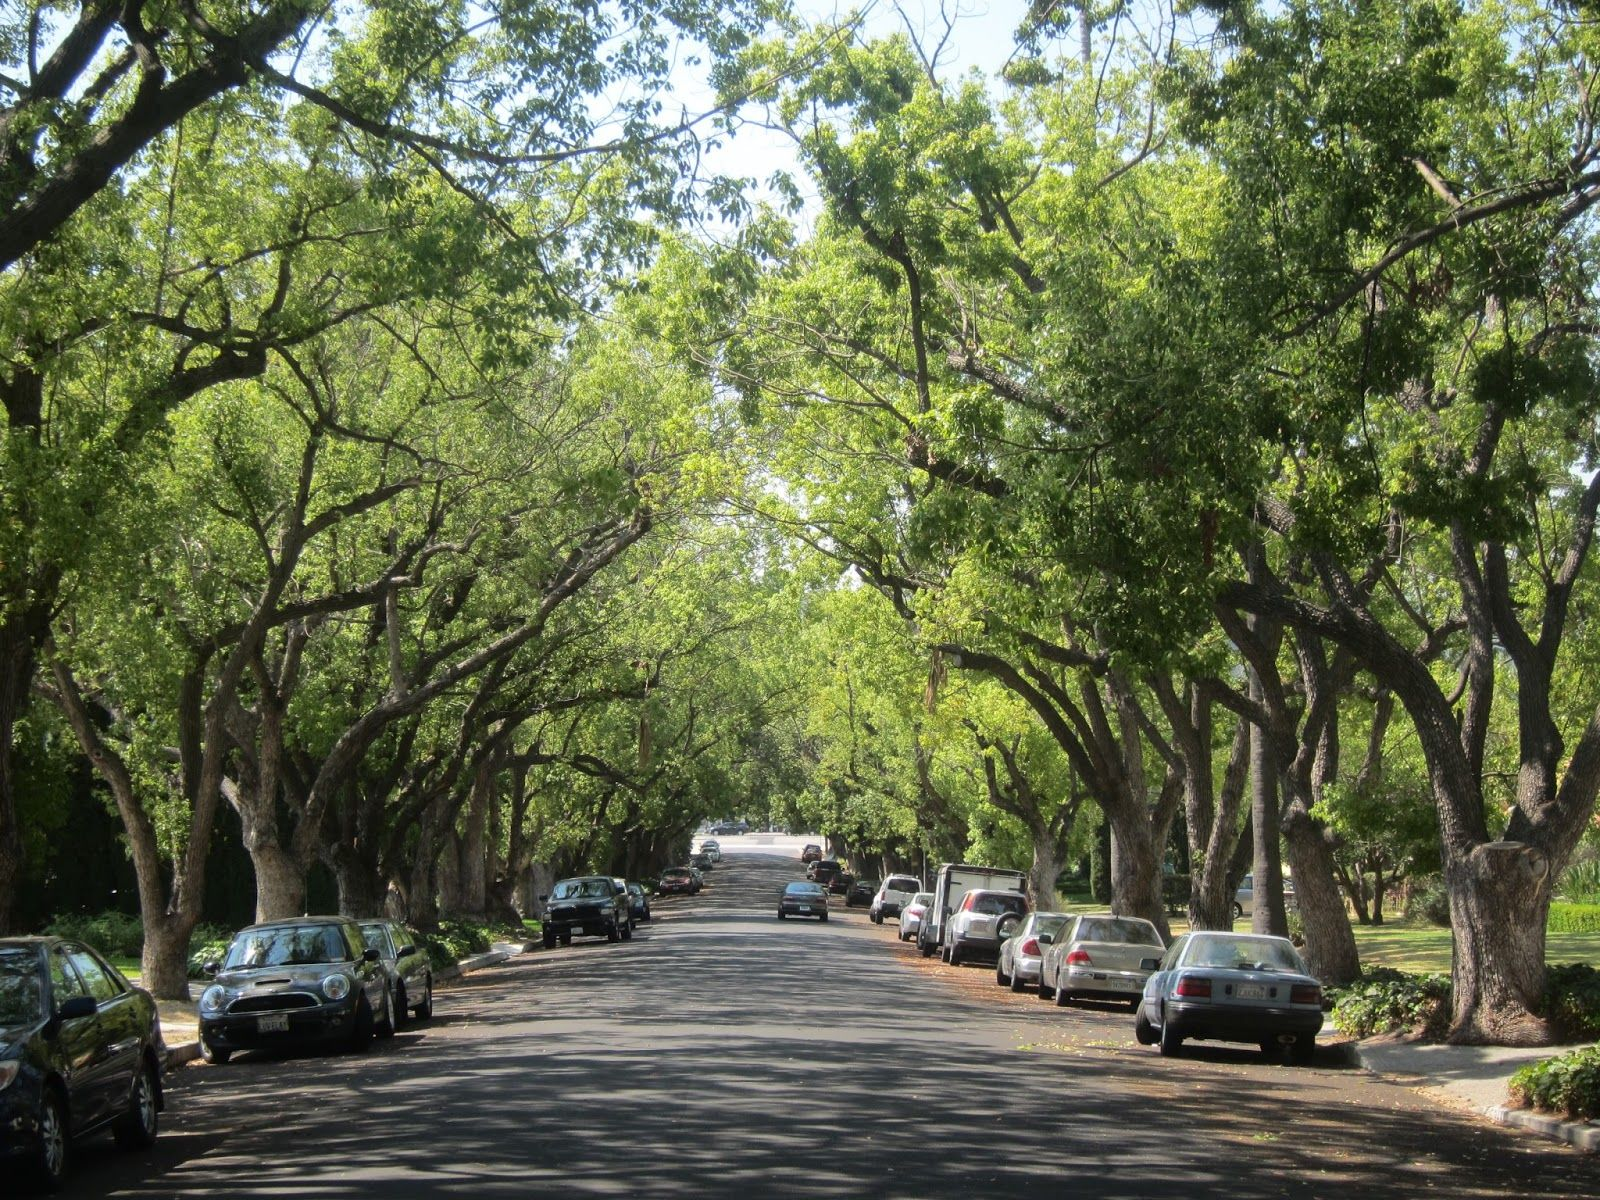 Camphor trees along Shearin Avenue